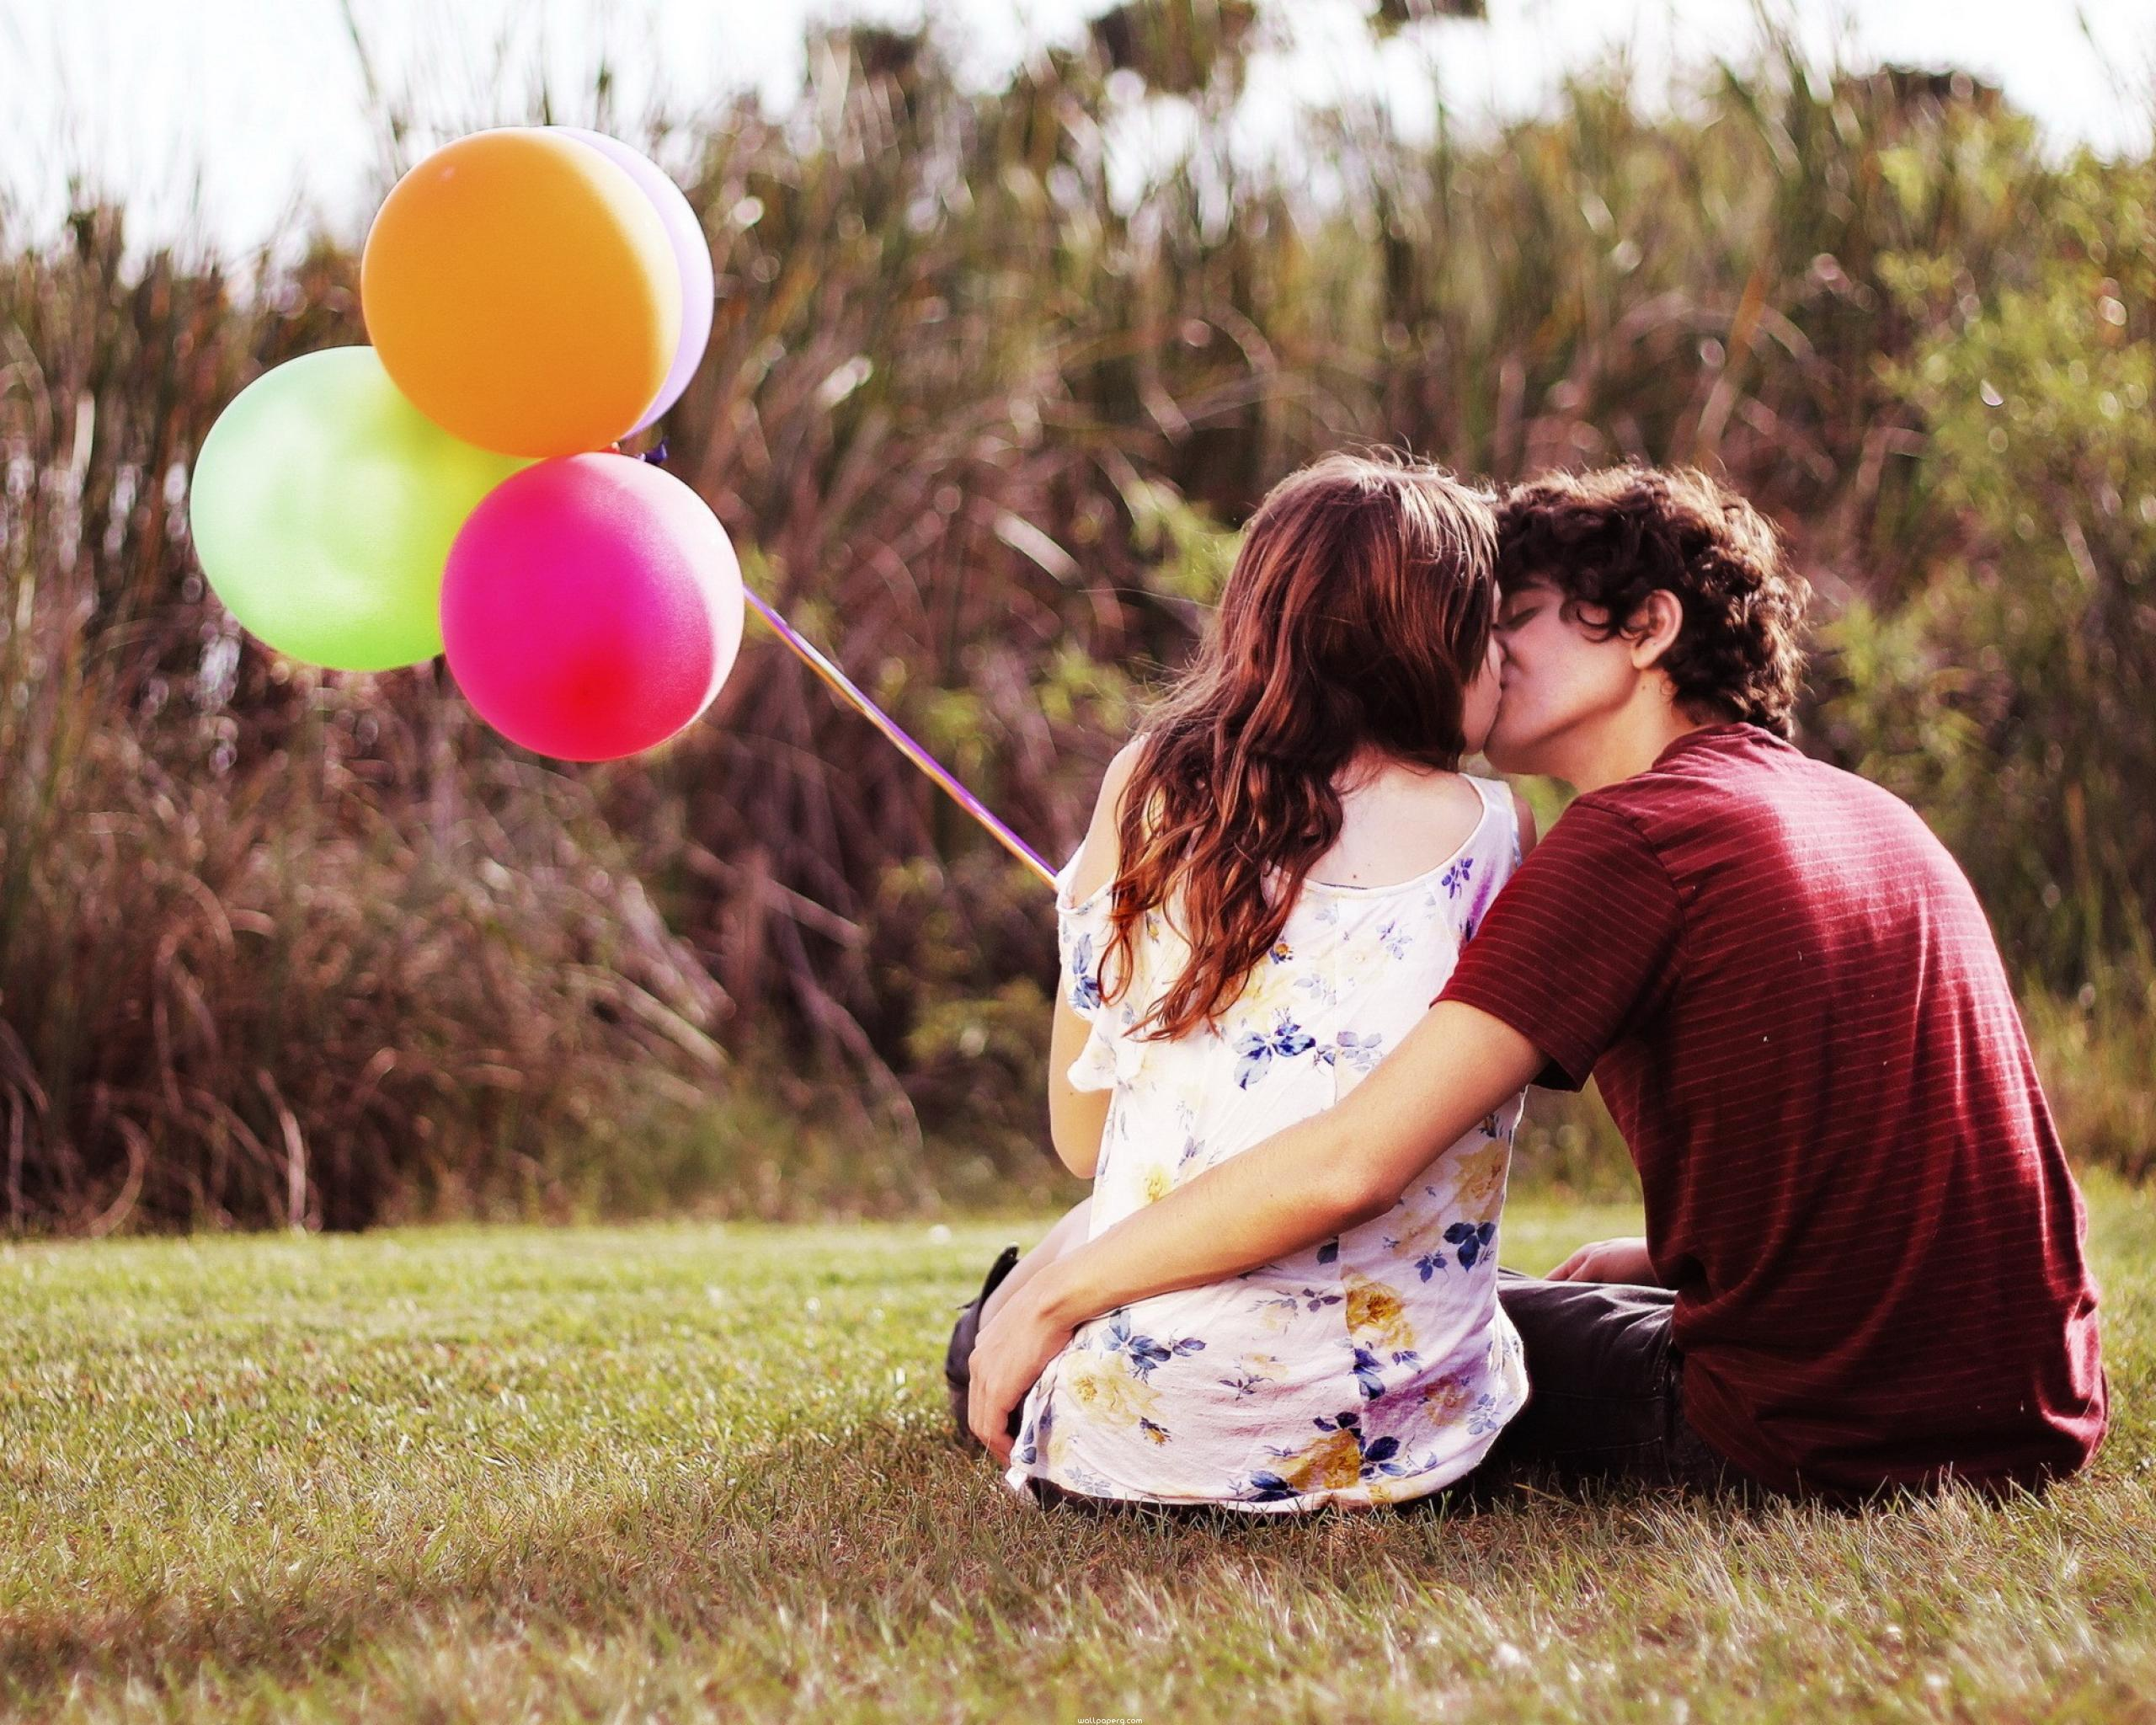 Download Sweet Love Couple Kissing Alone - Love Photo Girl And Boy Sad - HD Wallpaper